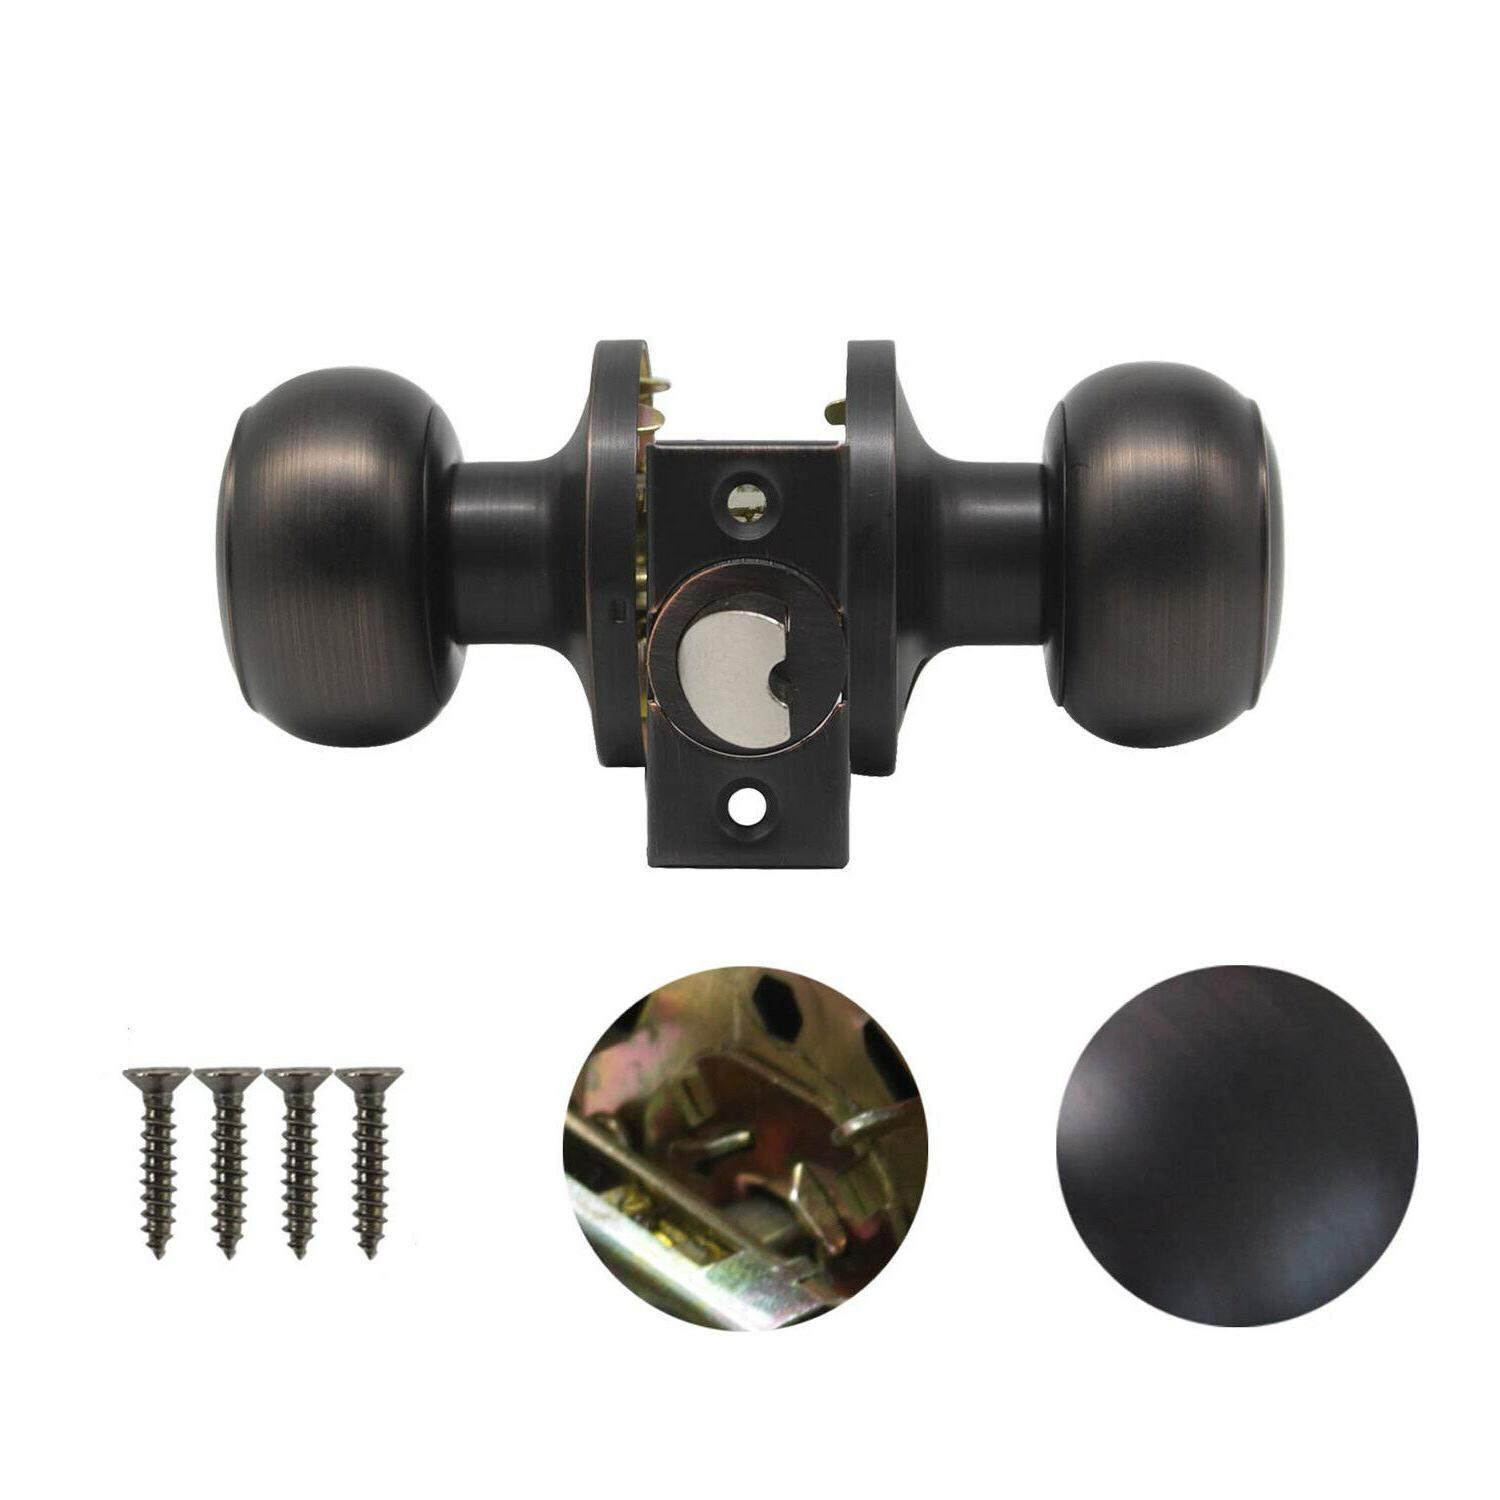 Oil Rubbed Lever Door Handles Entry/Passage Knobs